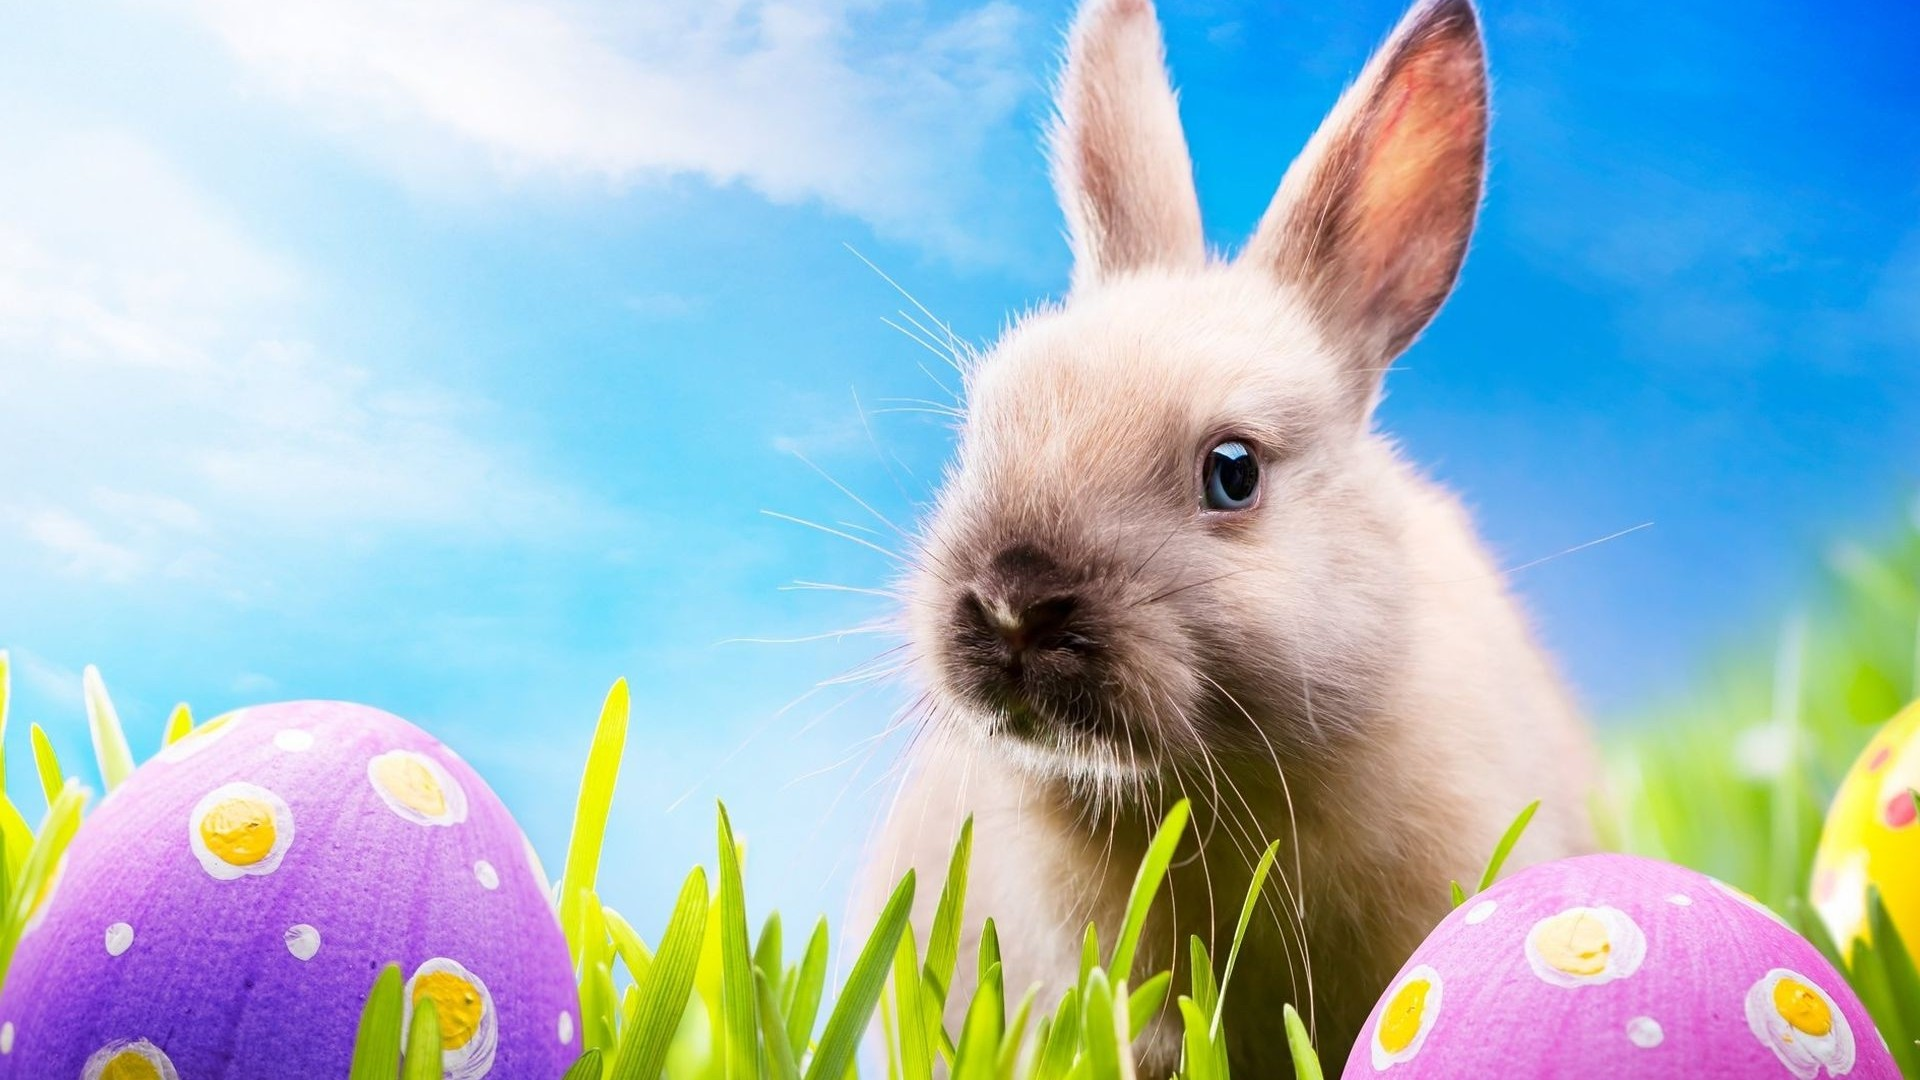 Easter HD Wallpapers   Wallpaper High Definition High Quality 1920x1080